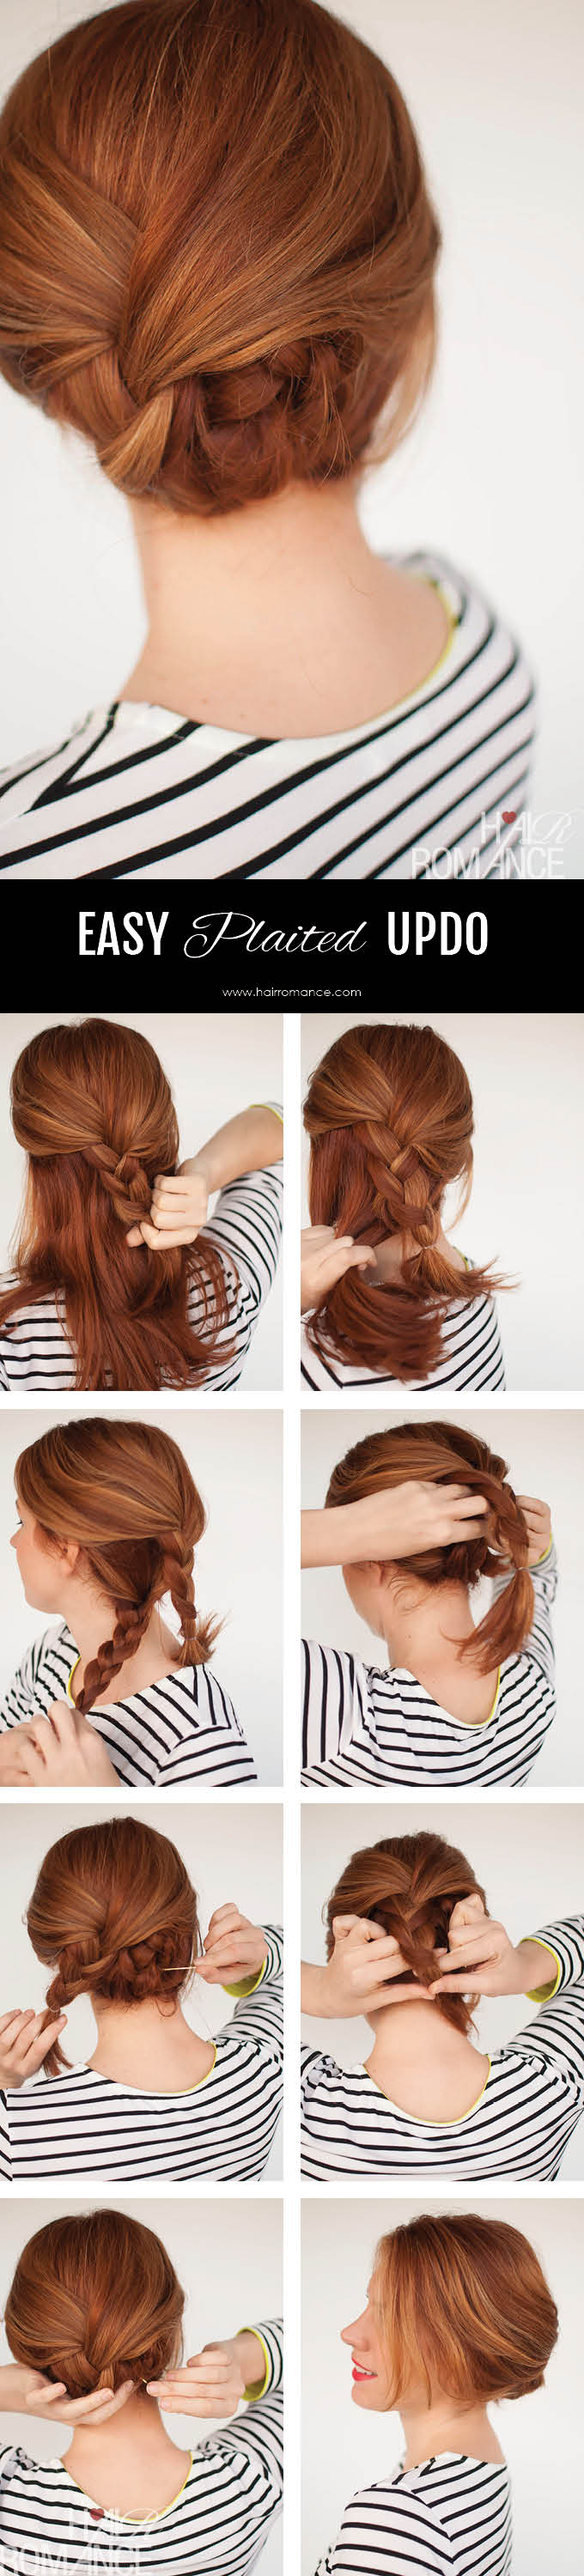 Hair Romance - easy plaited updo hairstyle tutorial - Click through for full tutorial